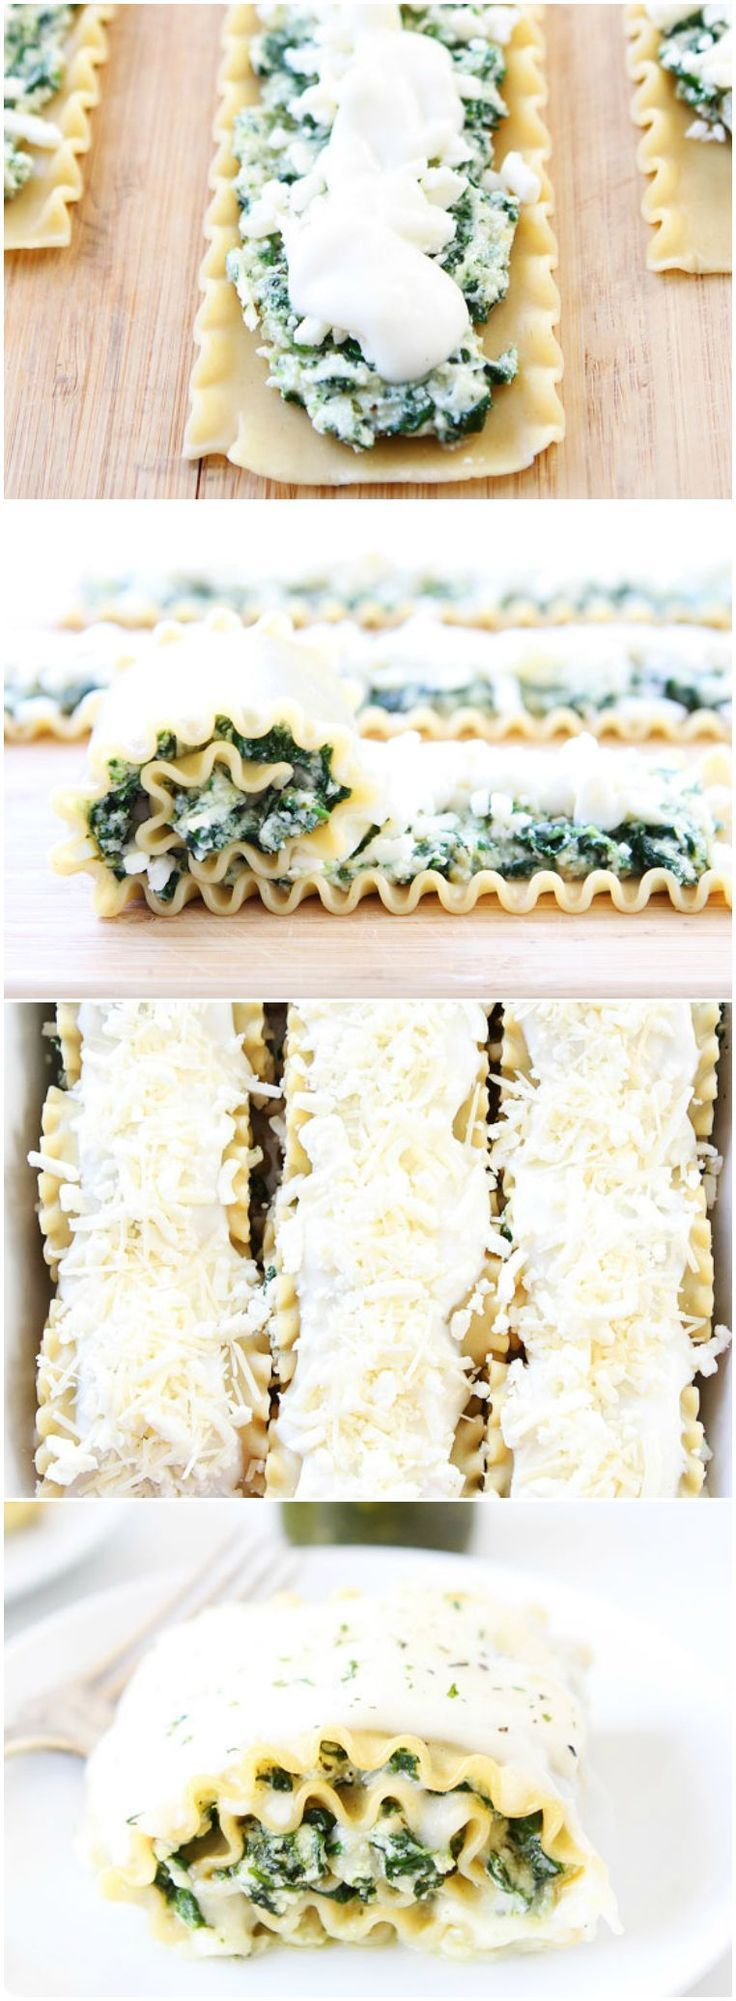 Pesto Lasagna Roll Ups Recipe on twopeasandtheirpo... One of our favorite meals! Love this twist on classic lasagna! And the roll ups freeze well too!